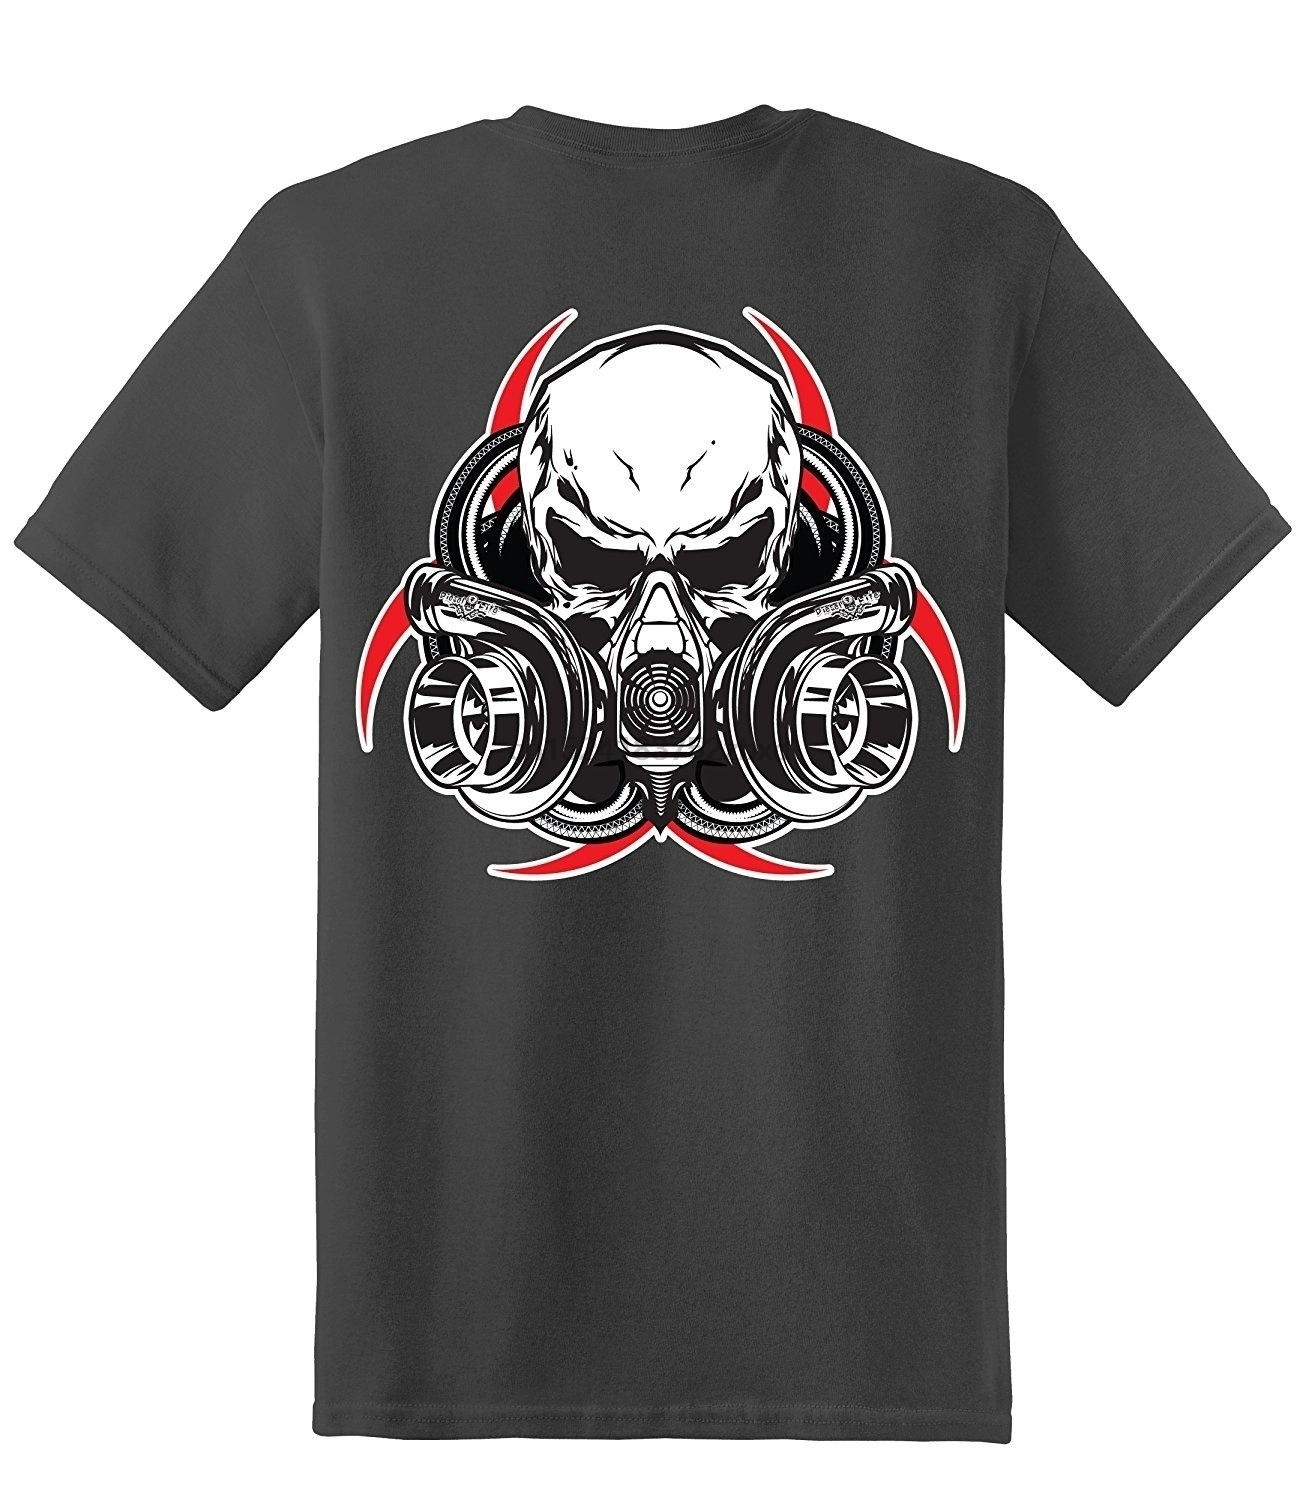 T-shirts Back To Search Resultsmen's Clothing Orderly Cotton Letter Print T-shirt Gas Mask Short Sleeve Summer Fashion Style T-shirt Charcoal Distinctive For Its Traditional Properties